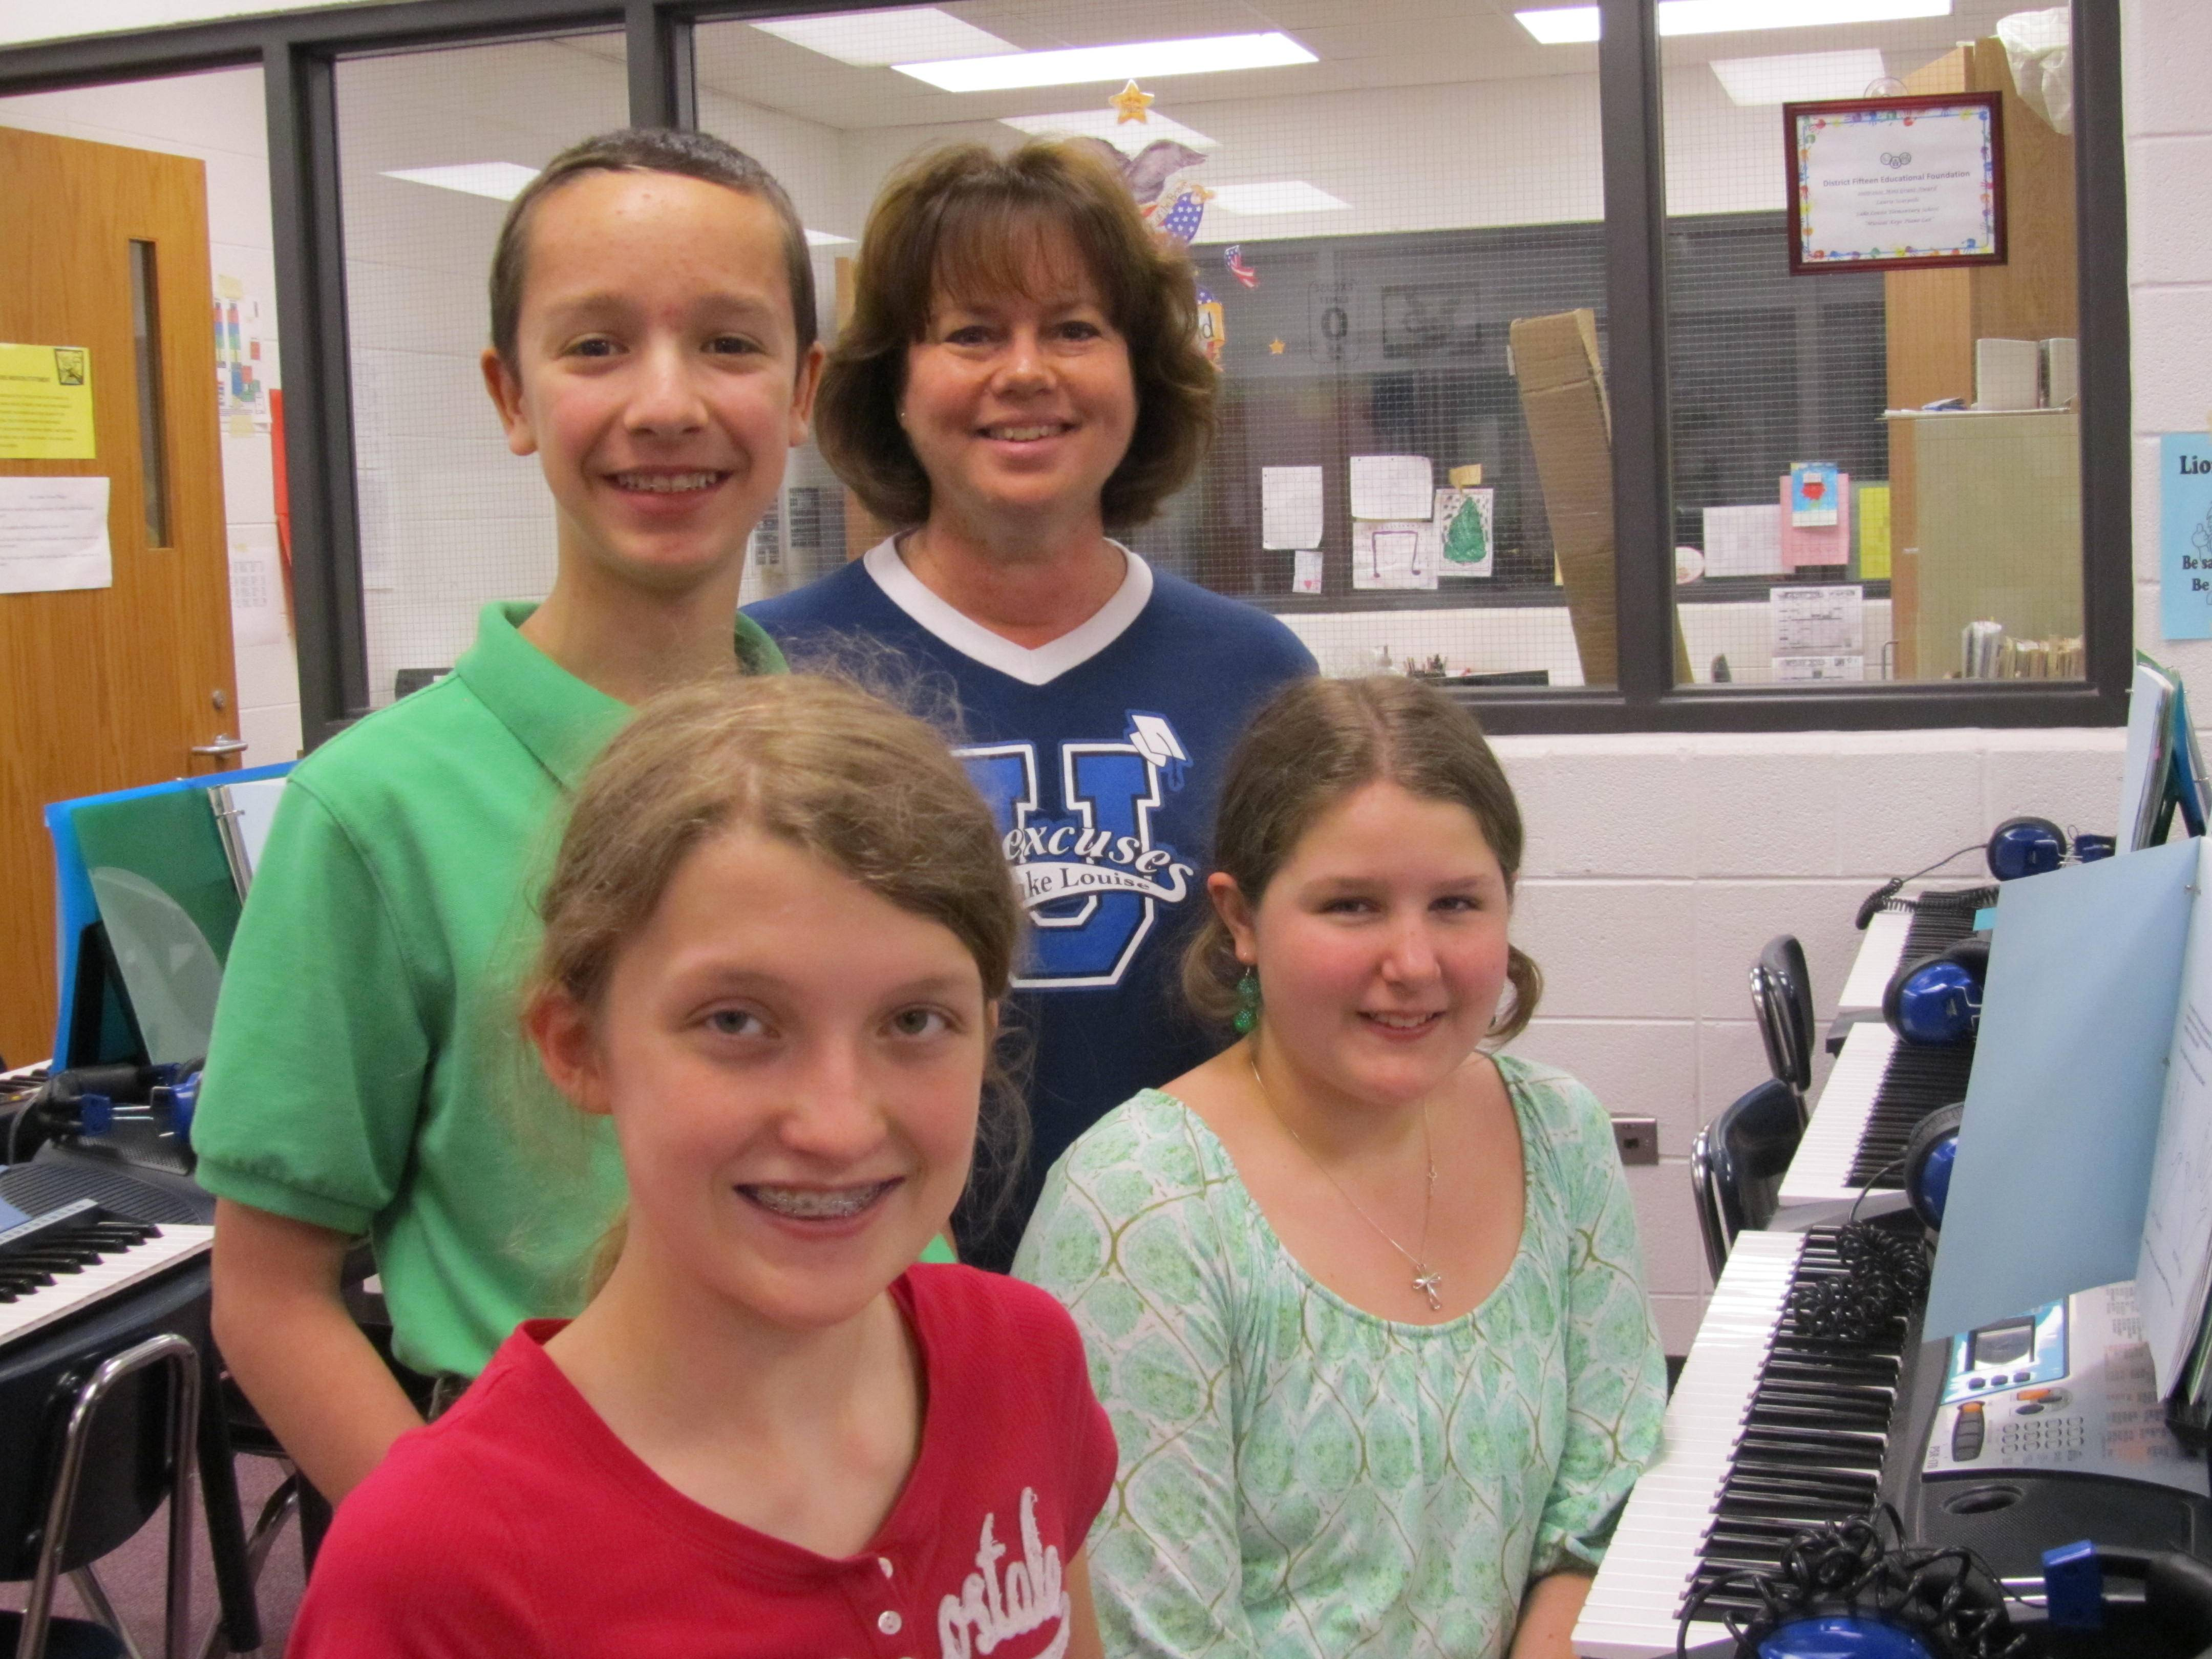 Back Row from Left: Kyle Cyr-Flessner, 6th Grade, Mrs. Laurie Scarpelli, Music Teacher. Front Row from Left: Haley Holz, 6th Grader, Katie Barclay, 6th Grader.  Photo taken in Lake Louise Music Room, 4/29/13